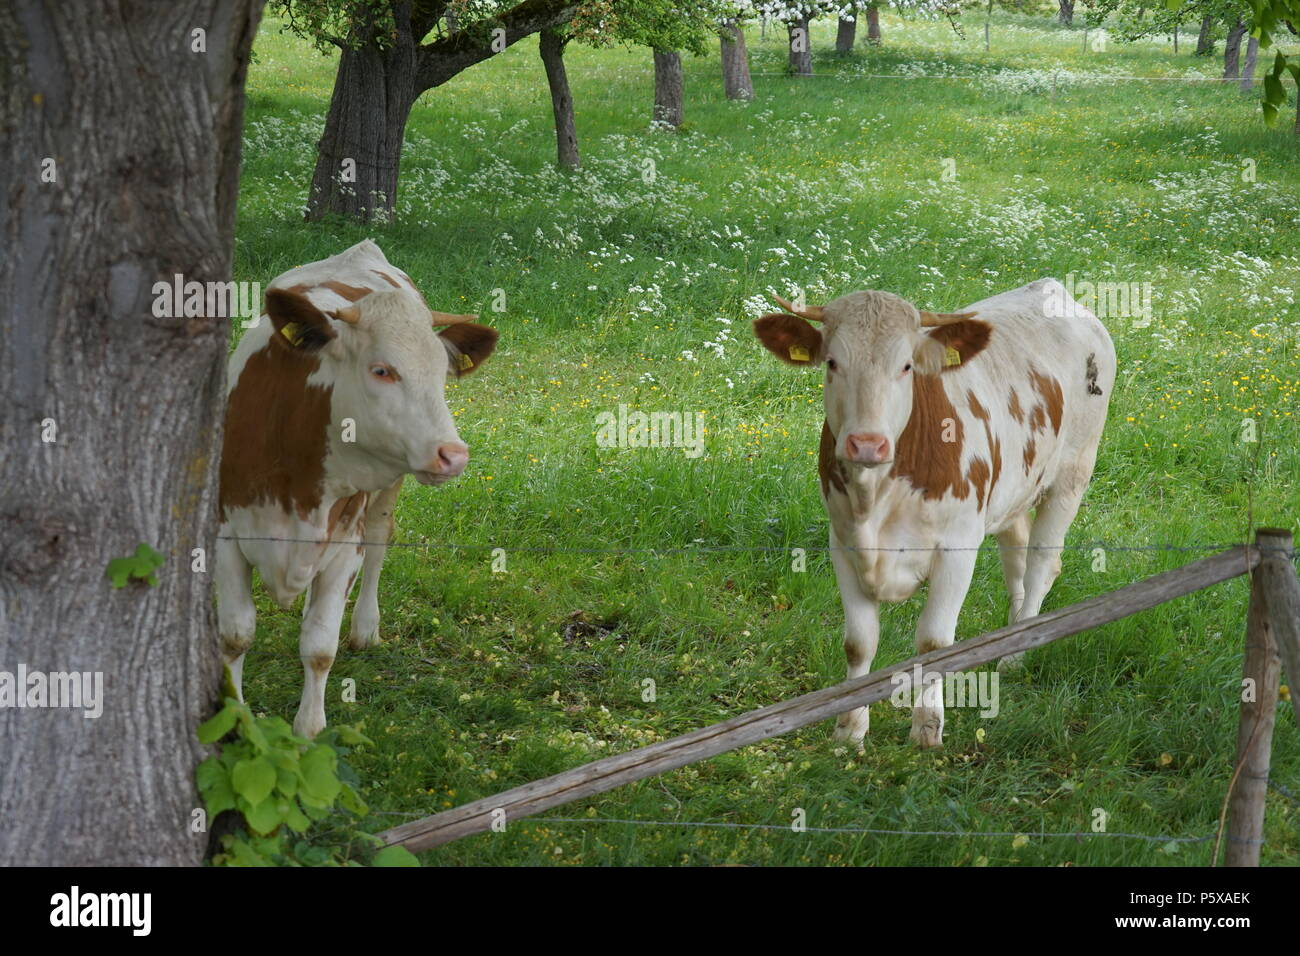 Two young Bulls on the Pasture, Southerm Germany, Europe Stock Photo